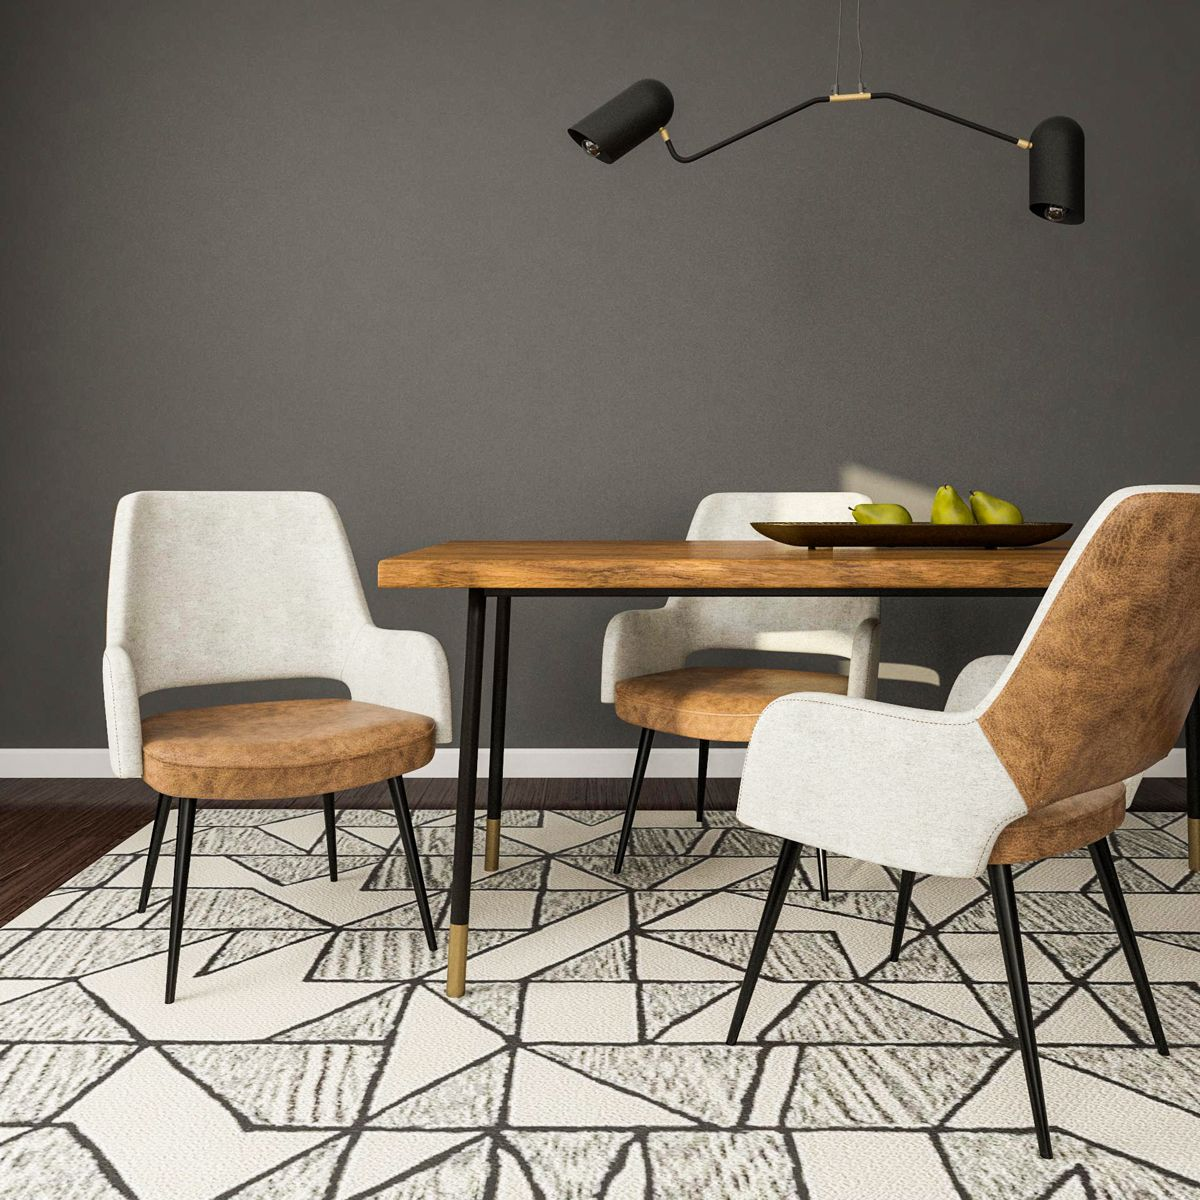 modern-dining-table-wood-and-abstract-patterns